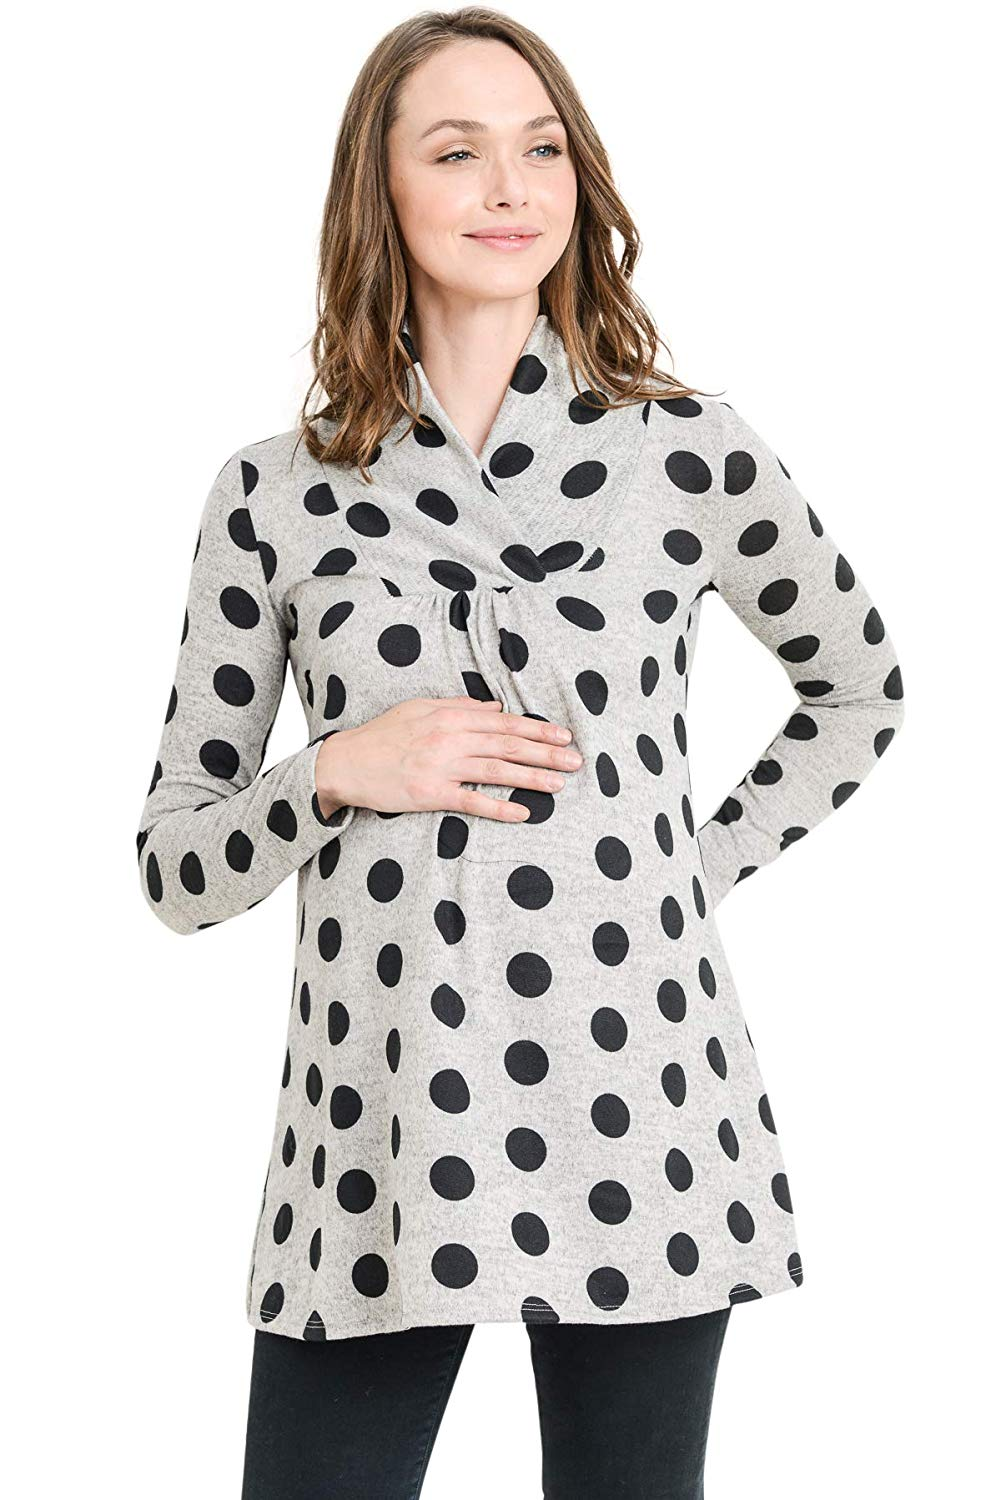 polka dots maternity tunic top